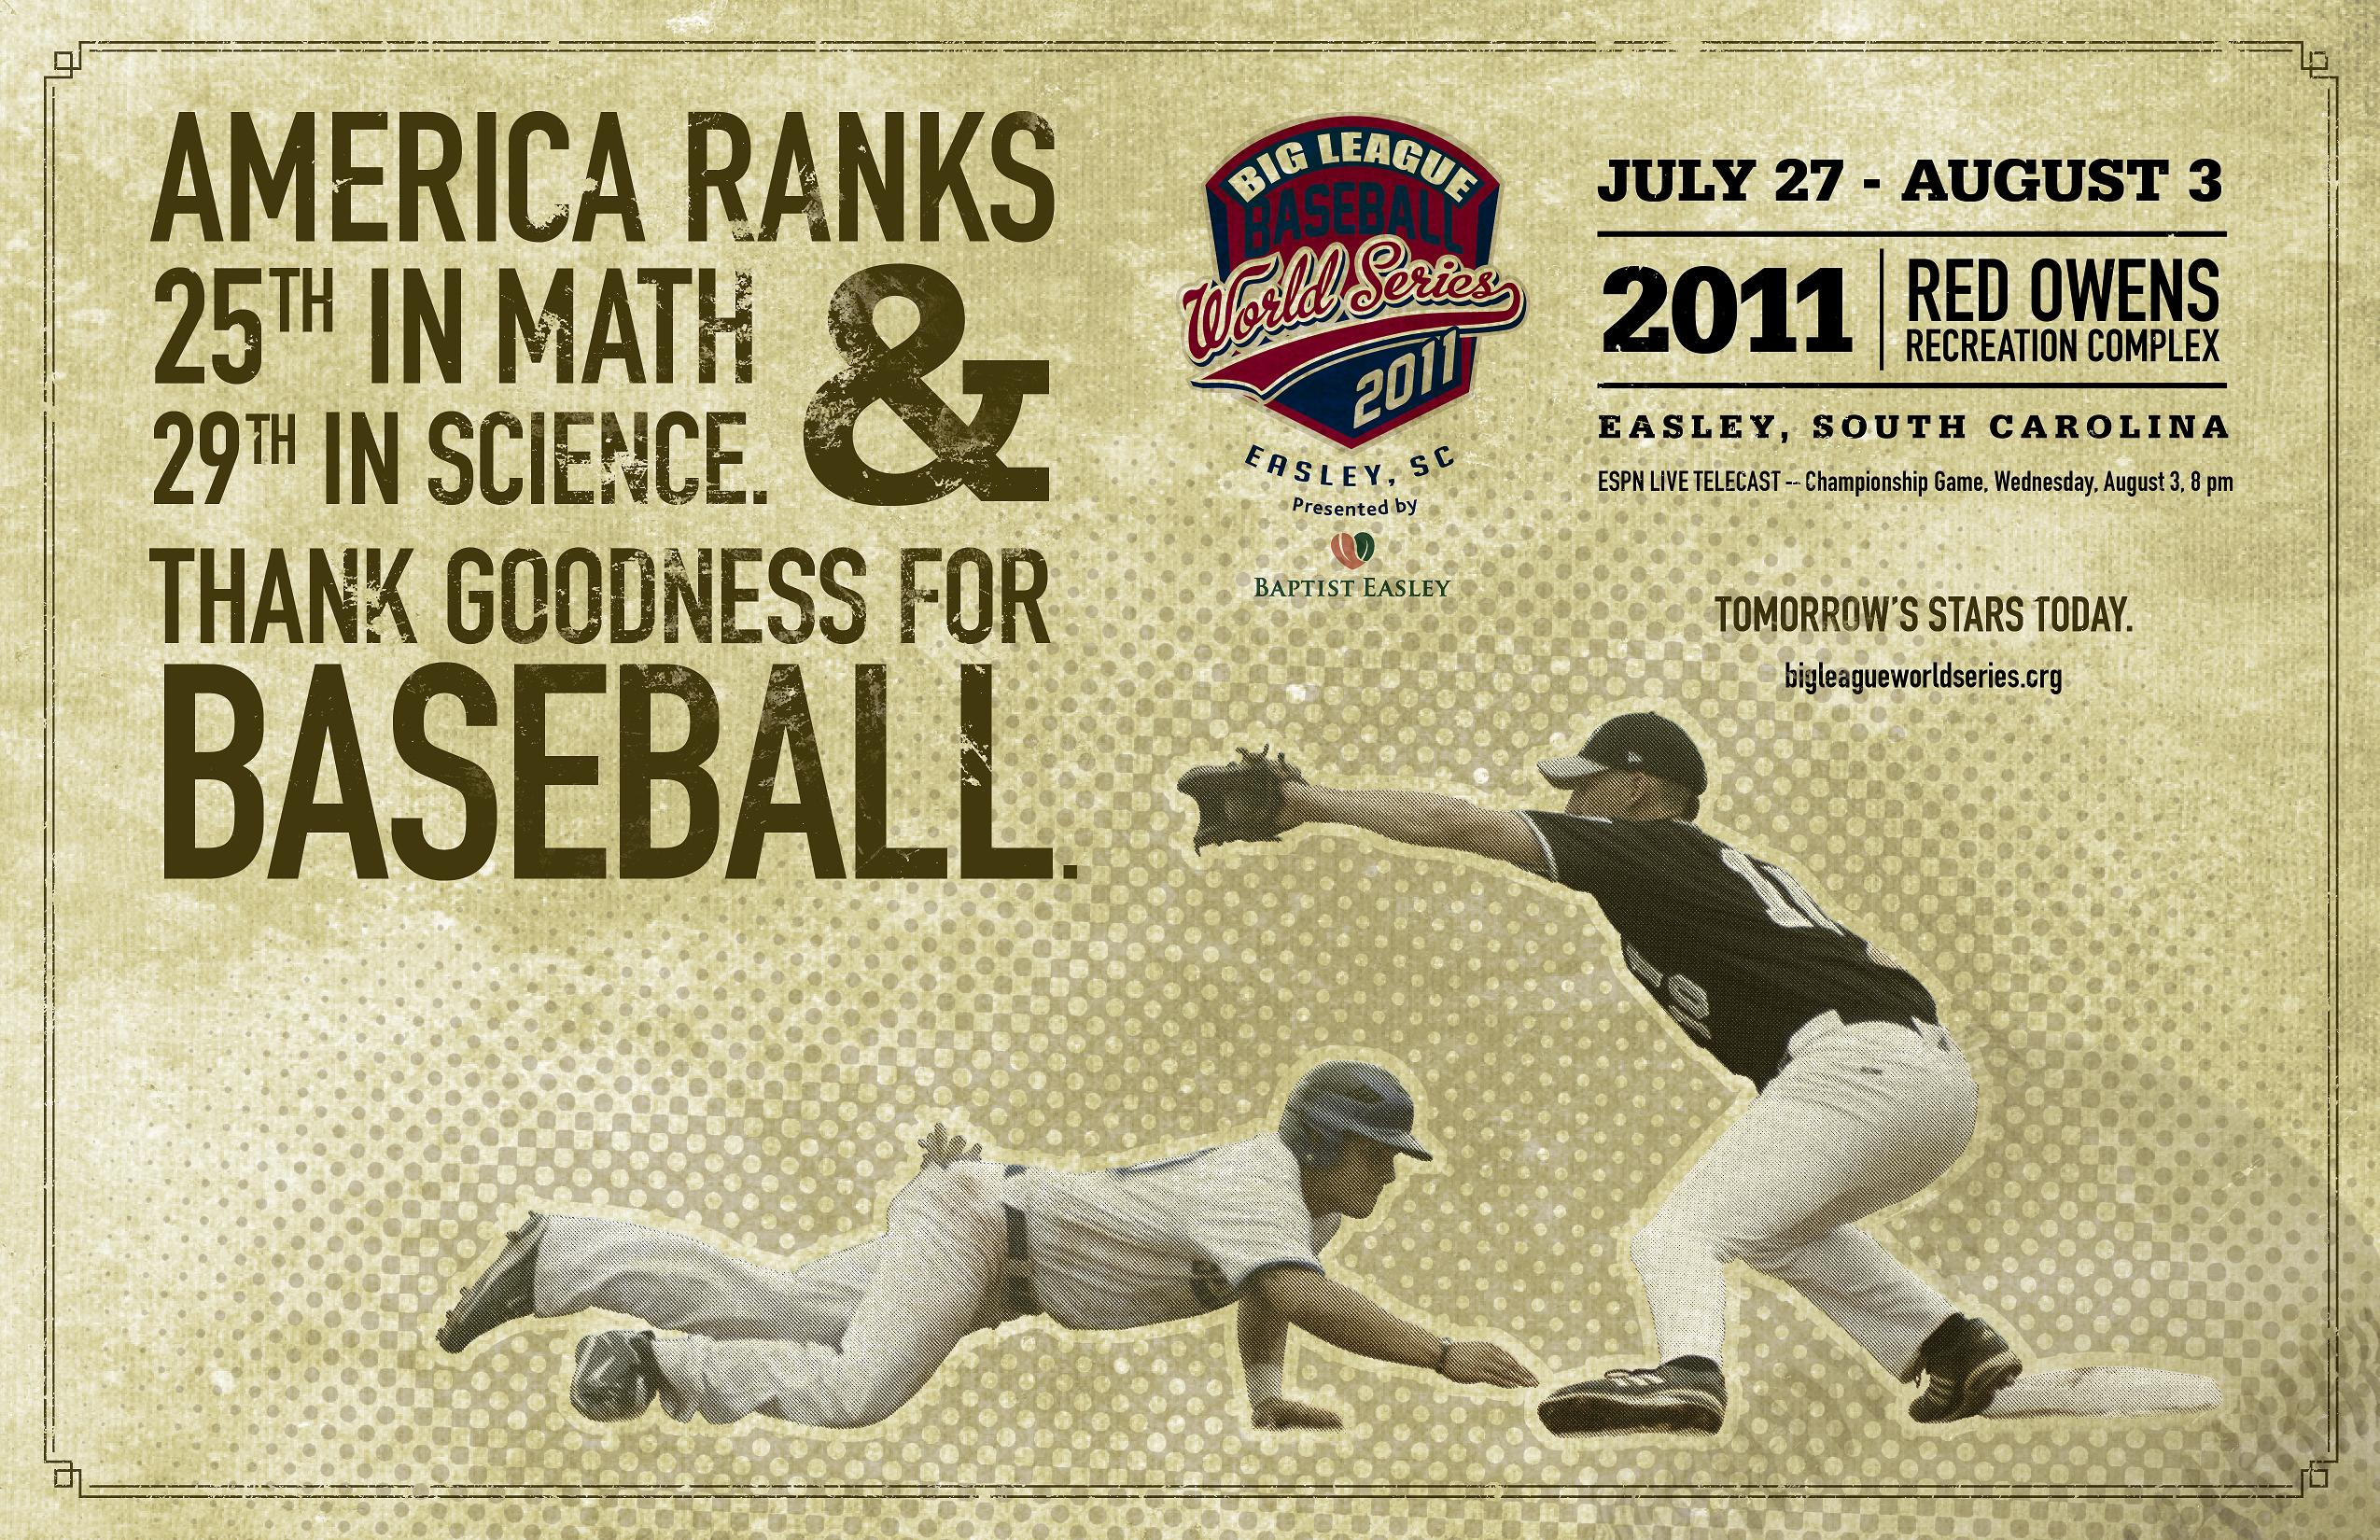 Big-League-World-Series-advertising-copywriting-work-by-Lochness-Marketing-greenville-math